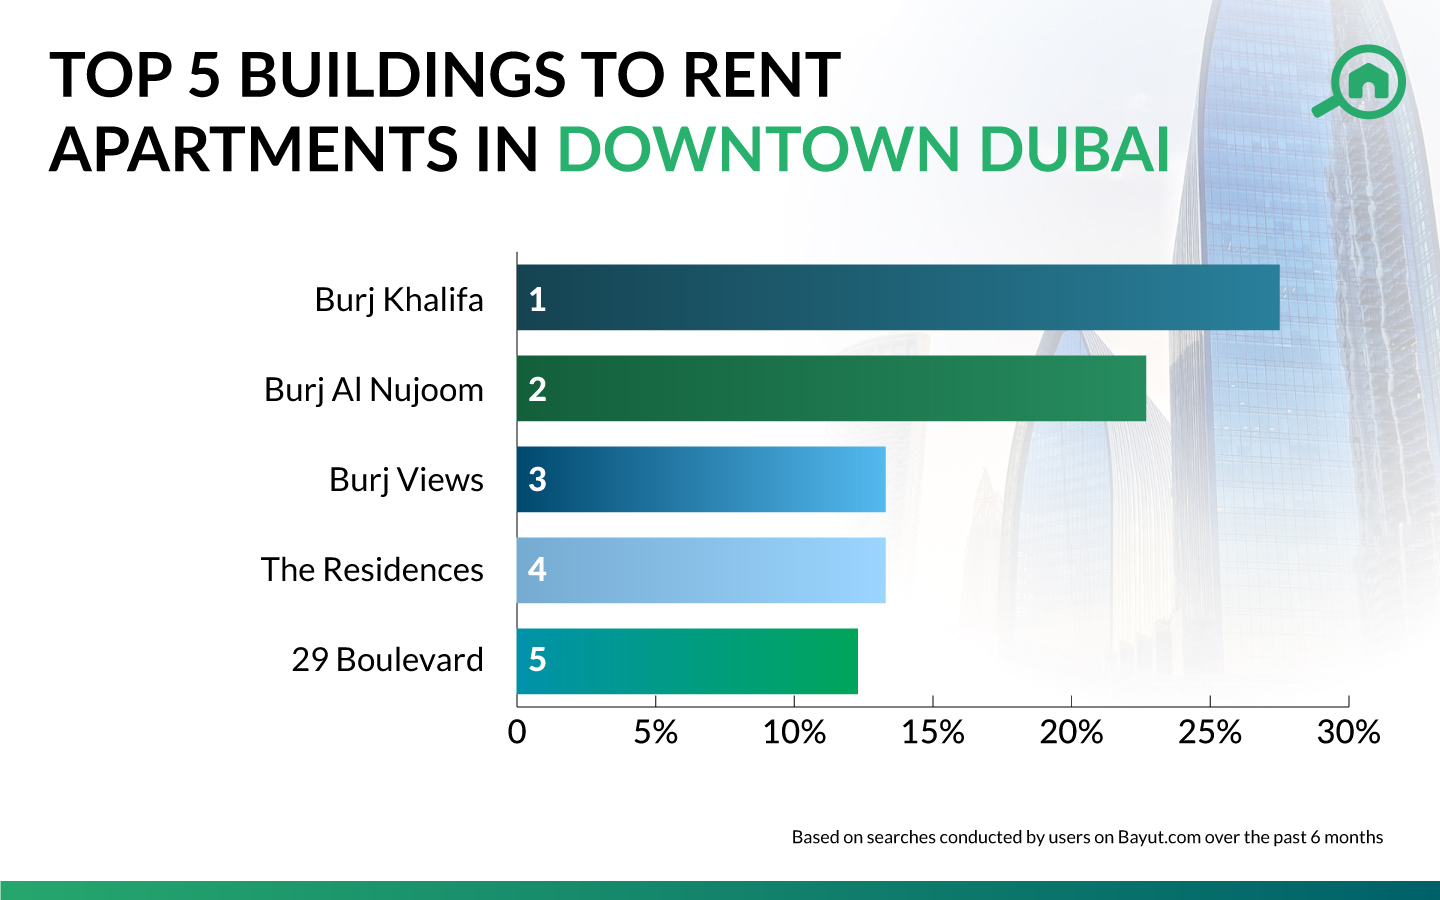 Infographic showing the most popular buildings with Downtown Dubai apartments